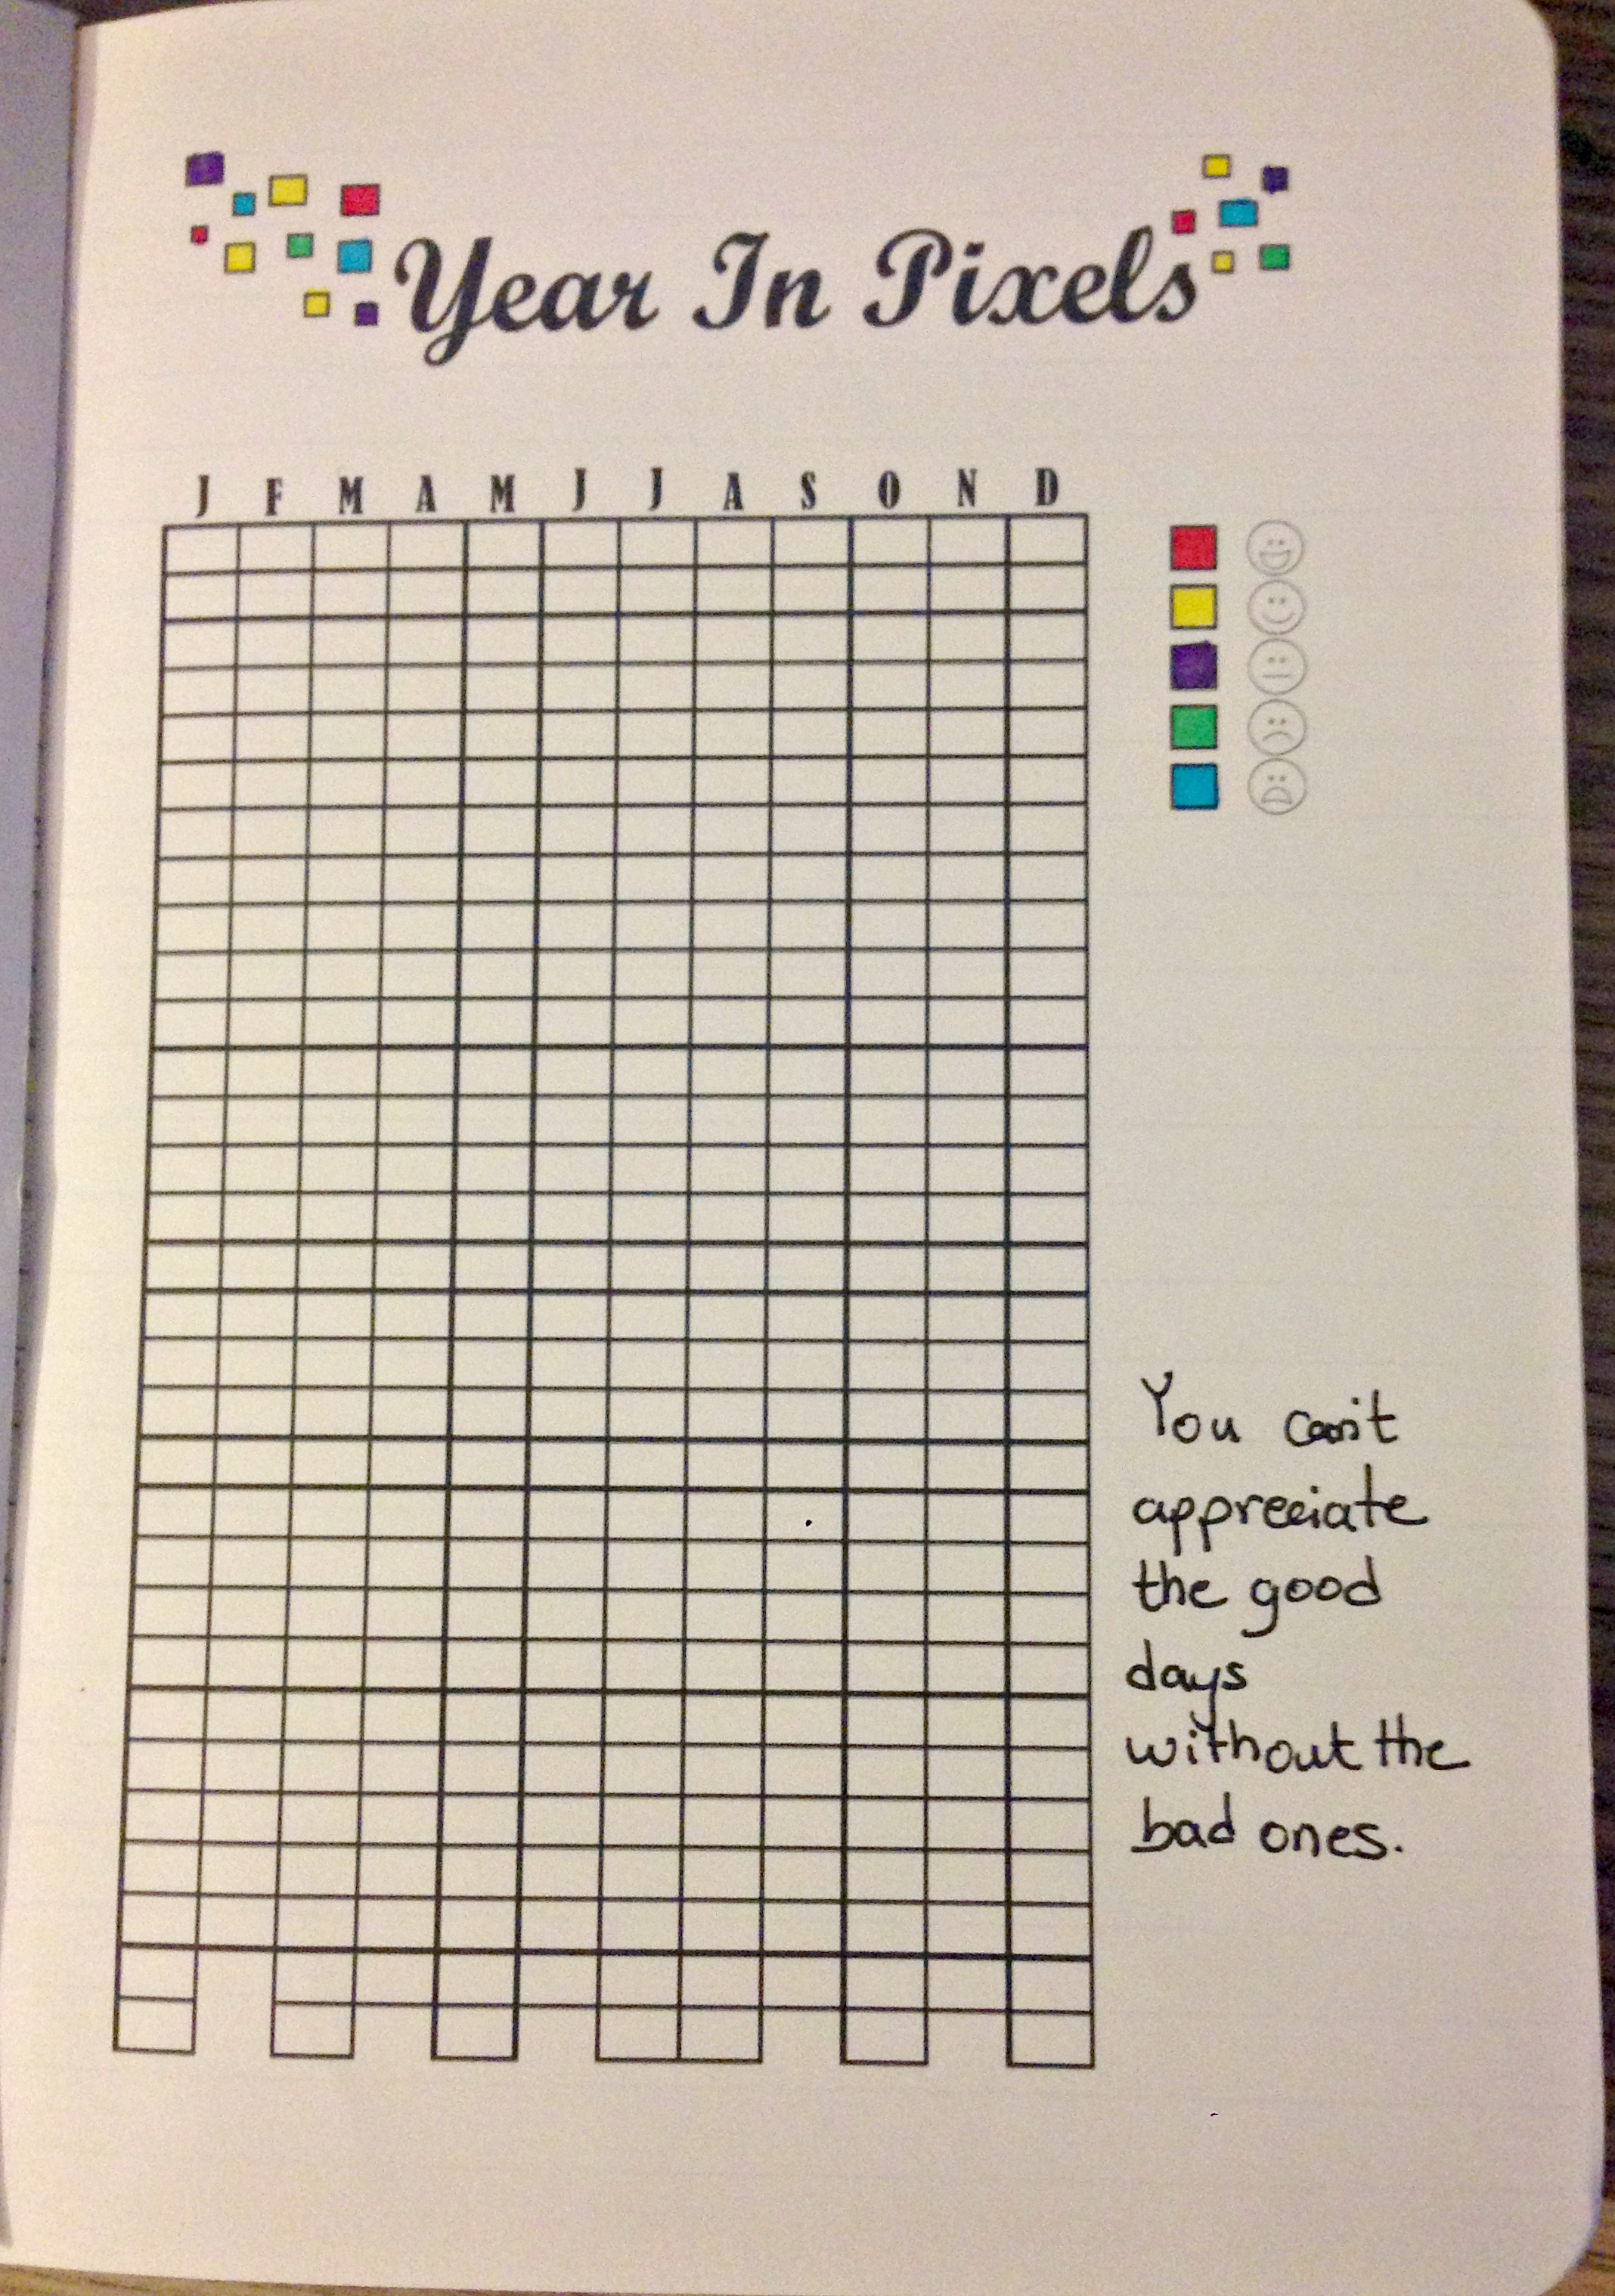 graphic regarding Year in Pixels Printable named 12 months within Pixels! Do-it-yourself Printables